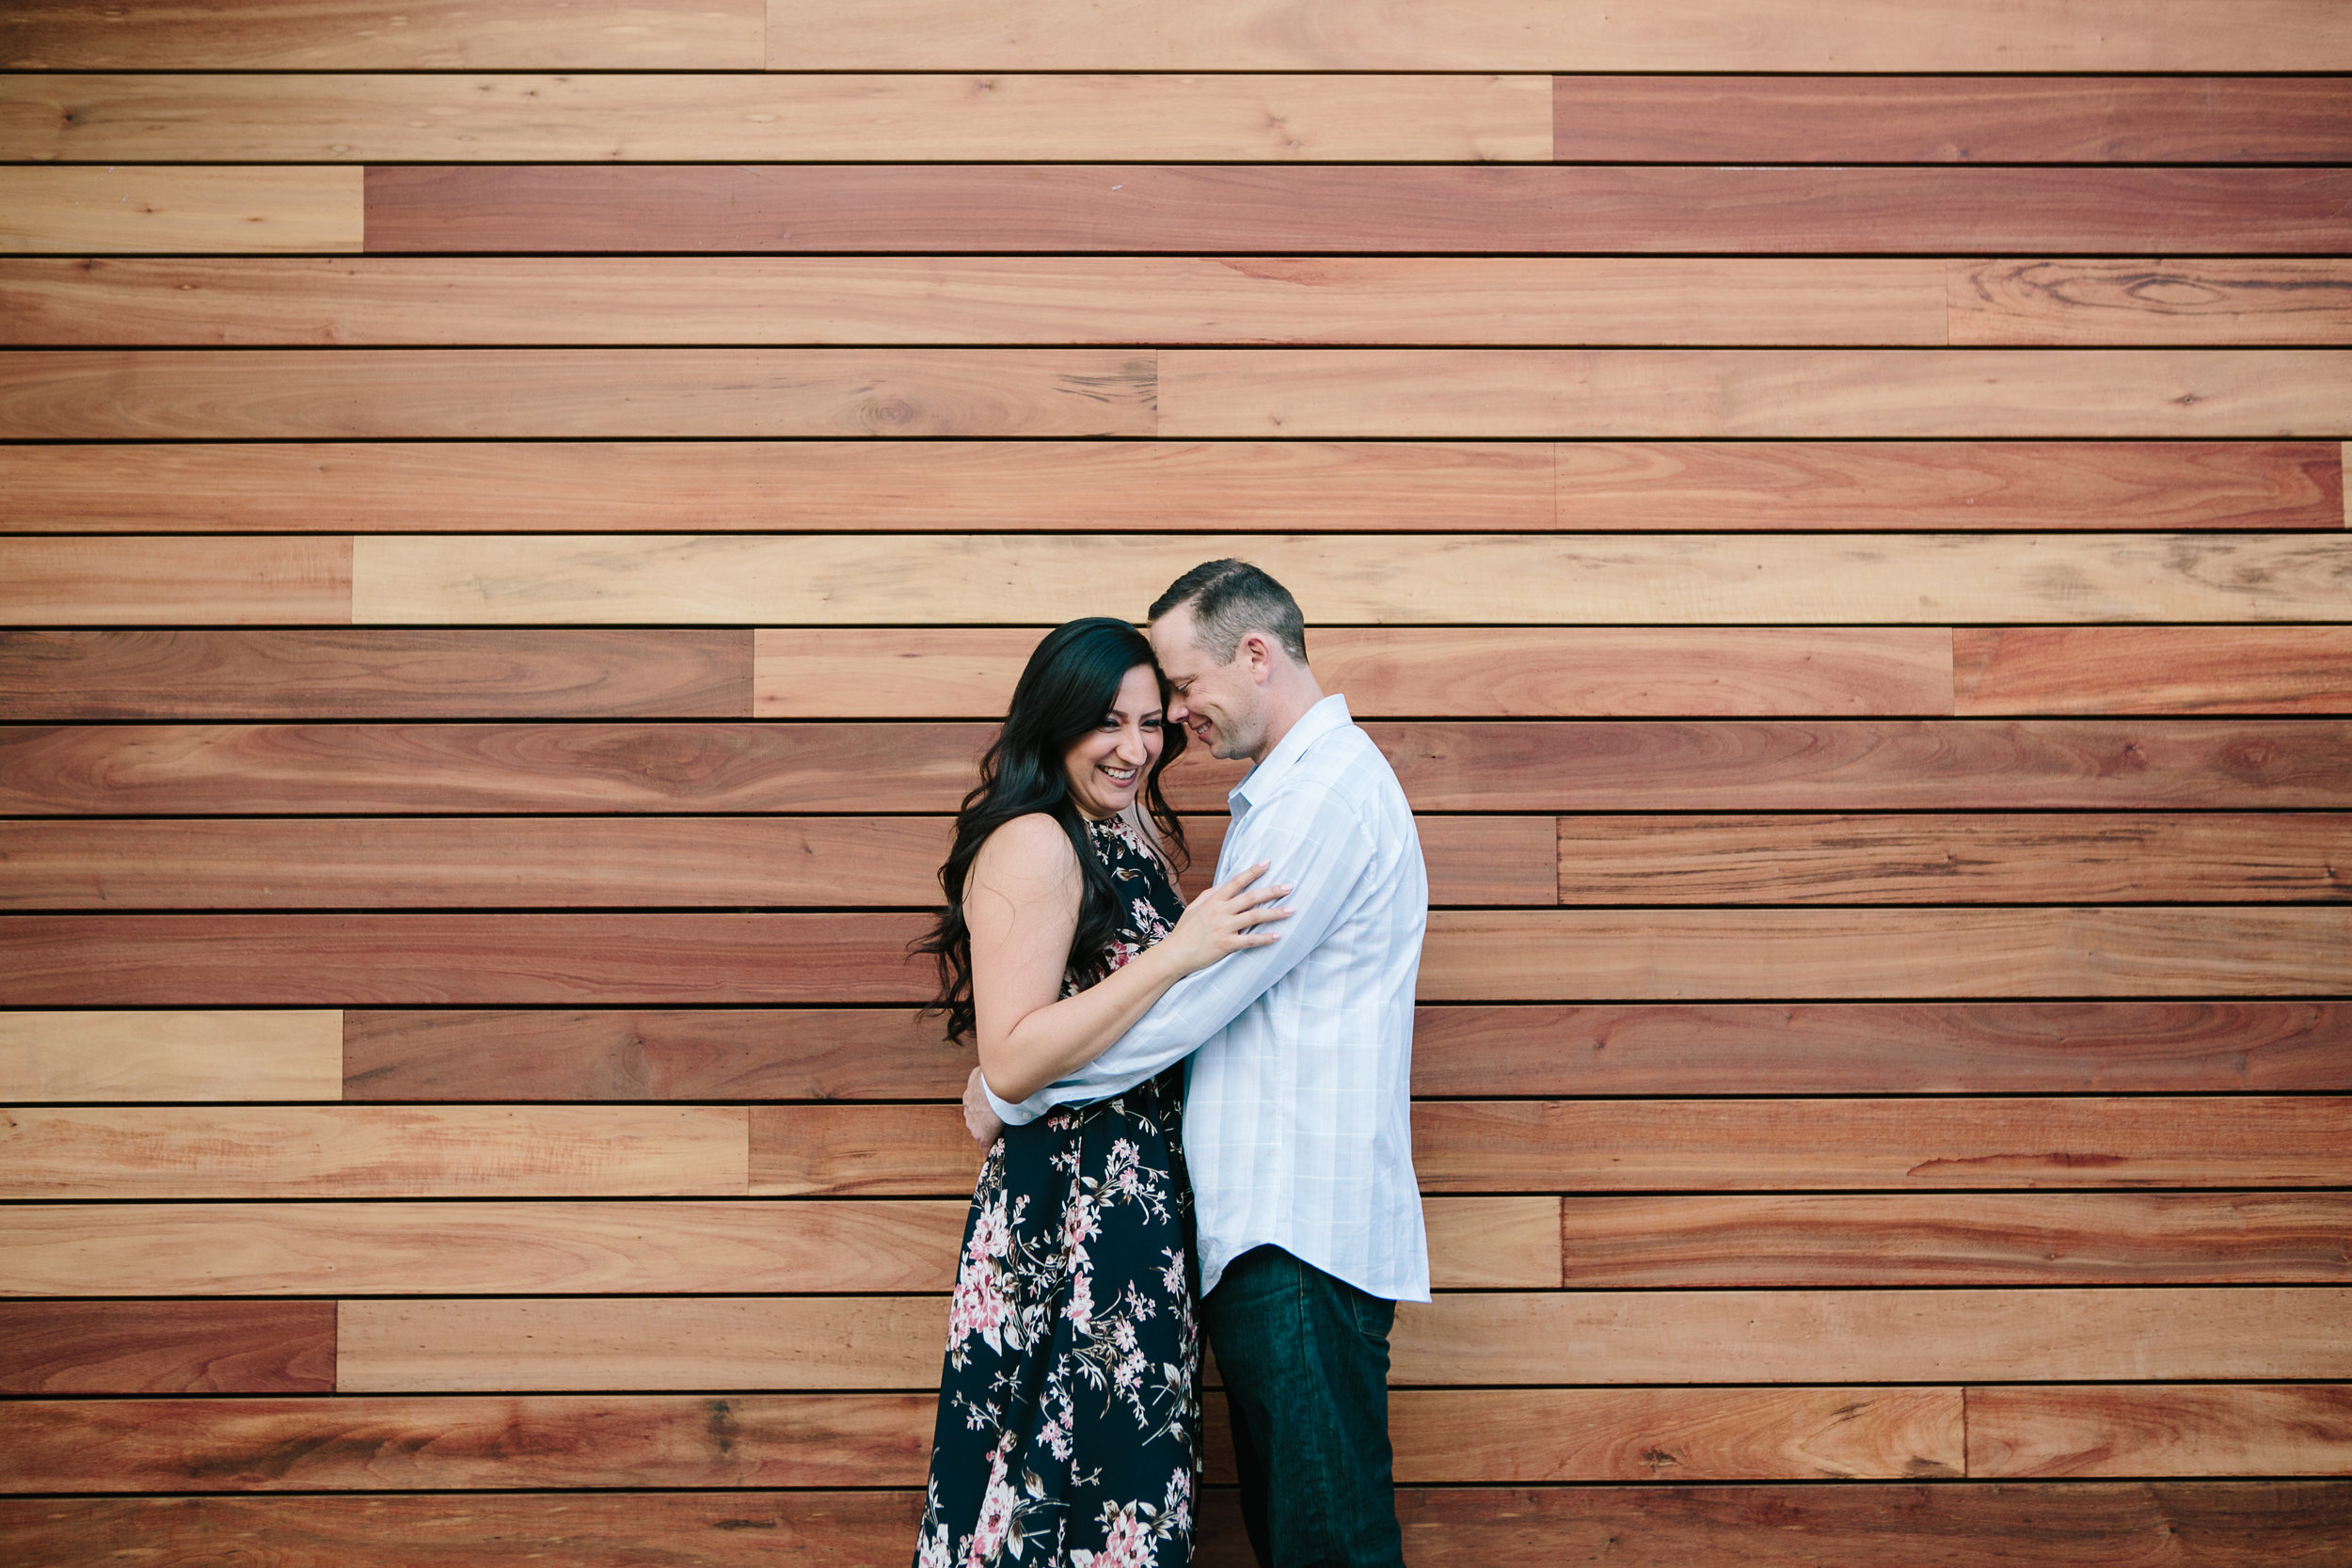 Engagements - sessions begin at $450